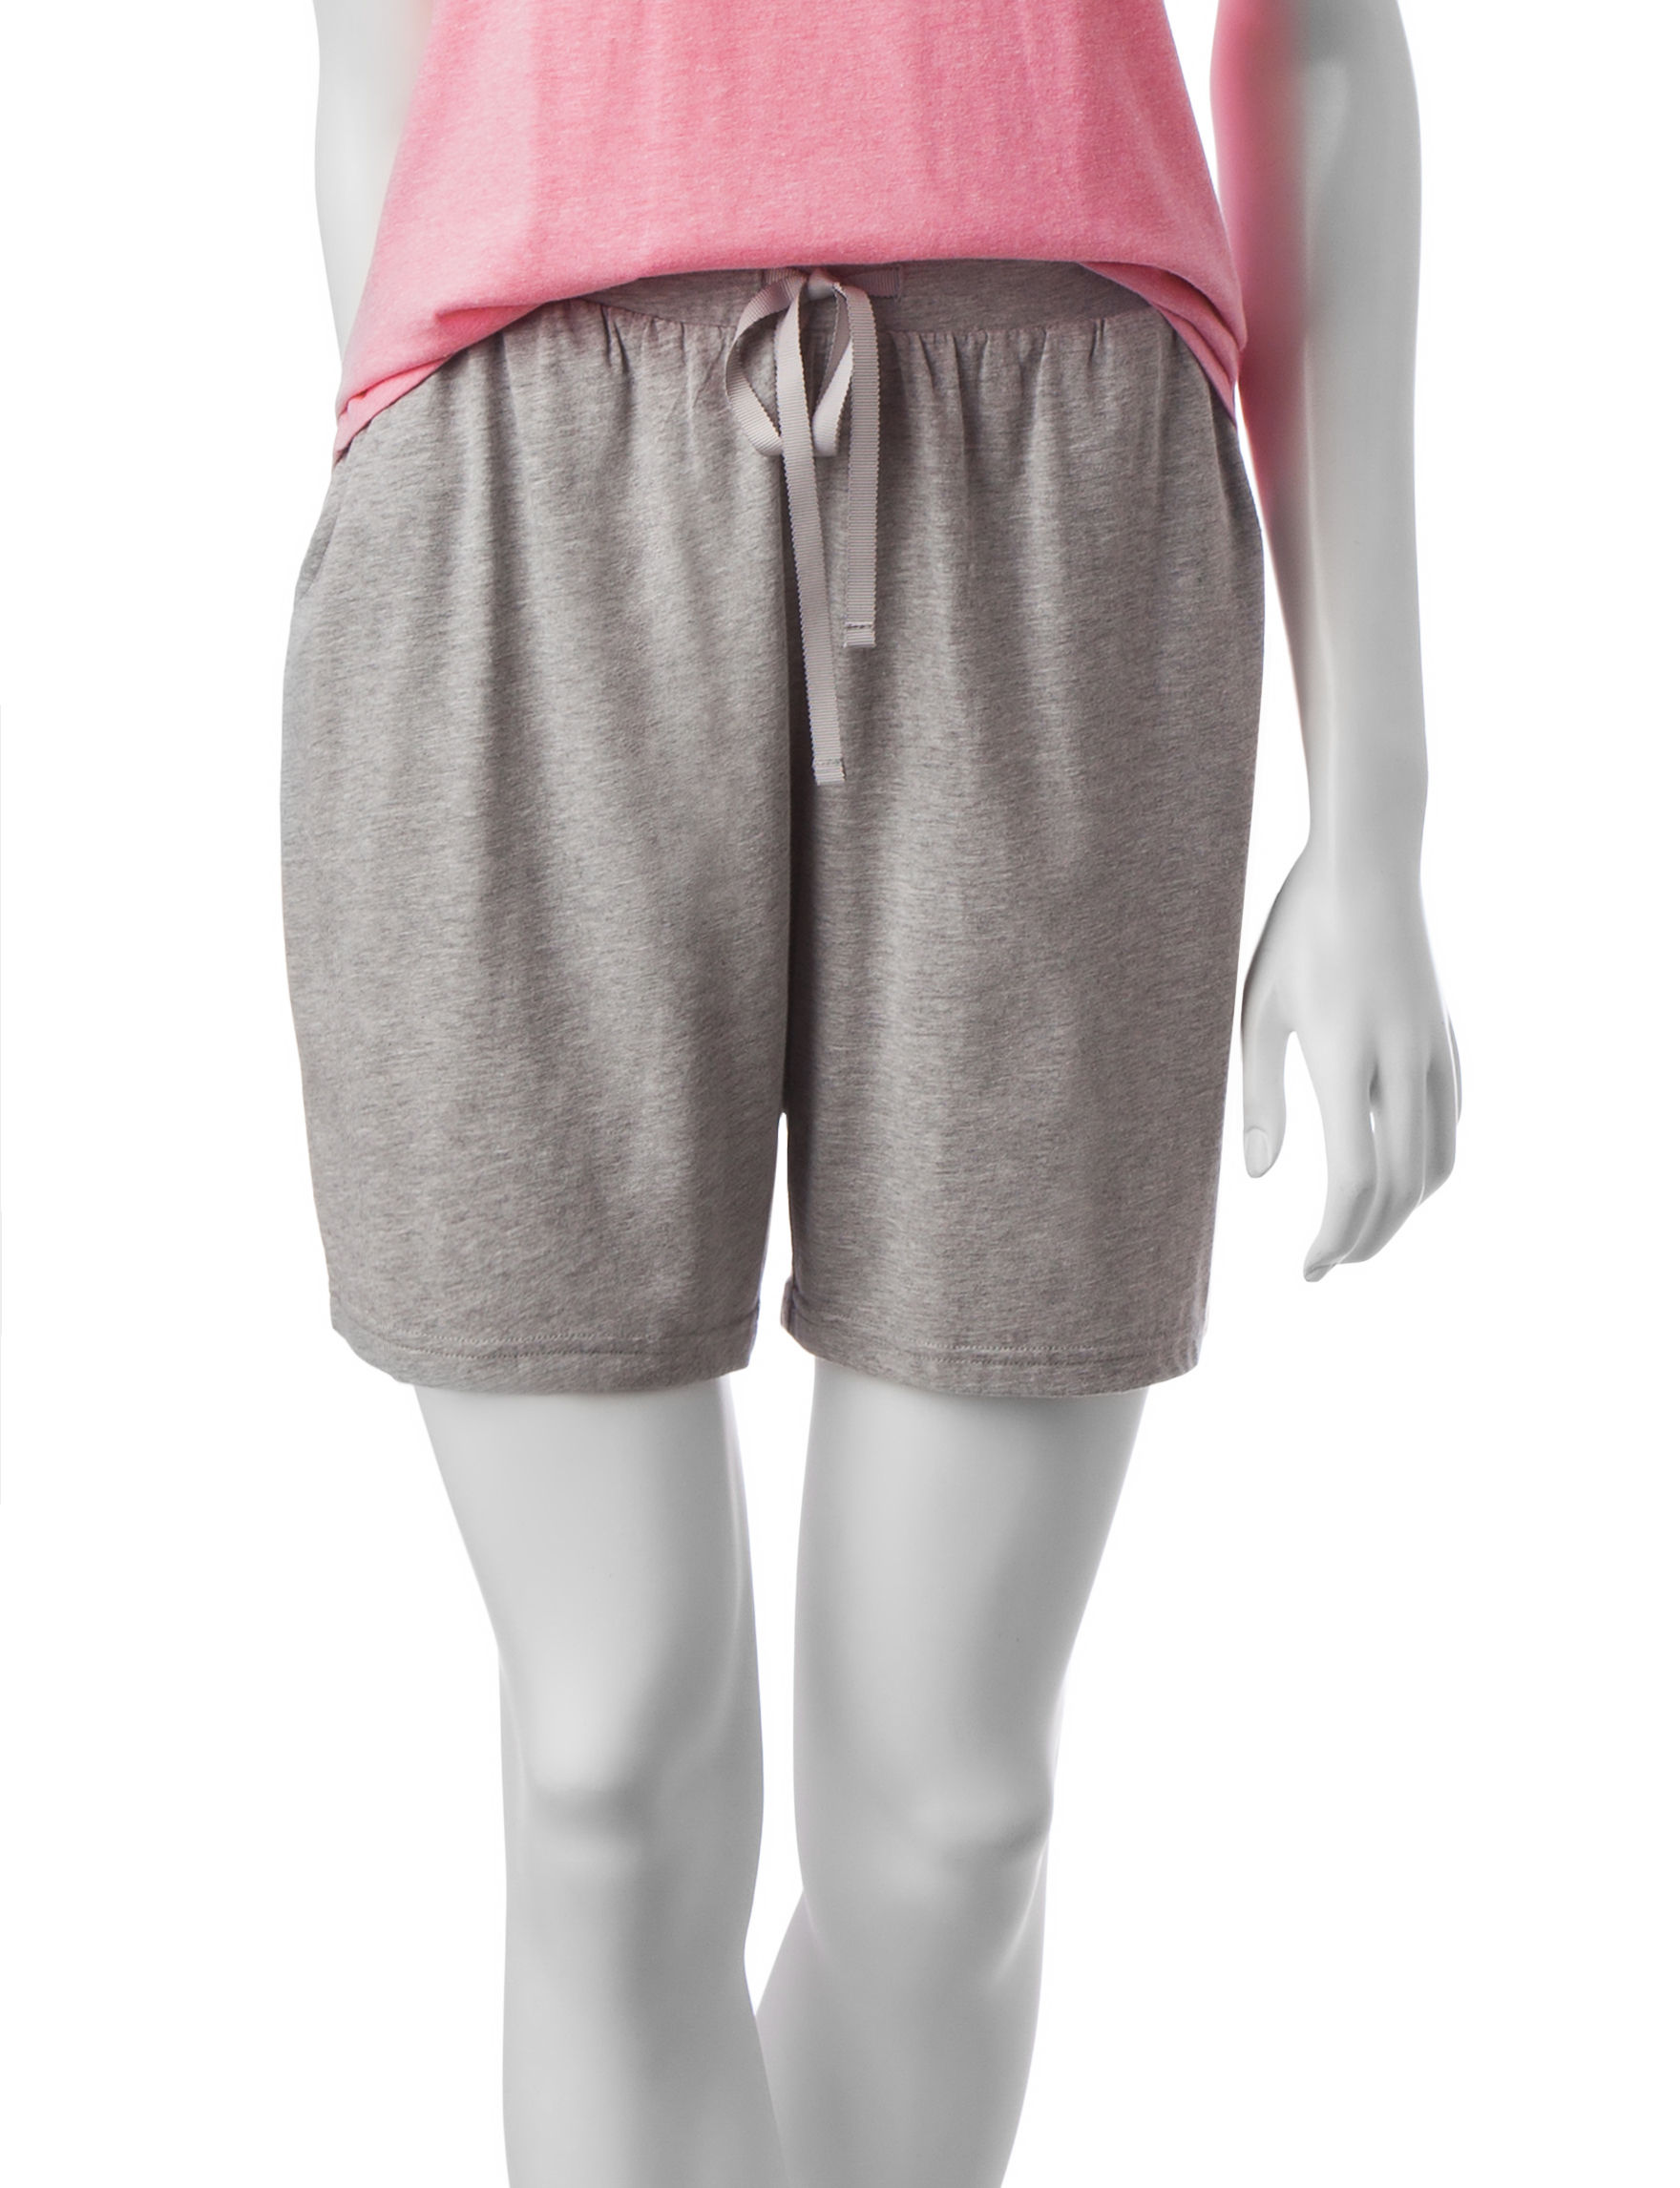 Hanes Grey Pajama Bottoms